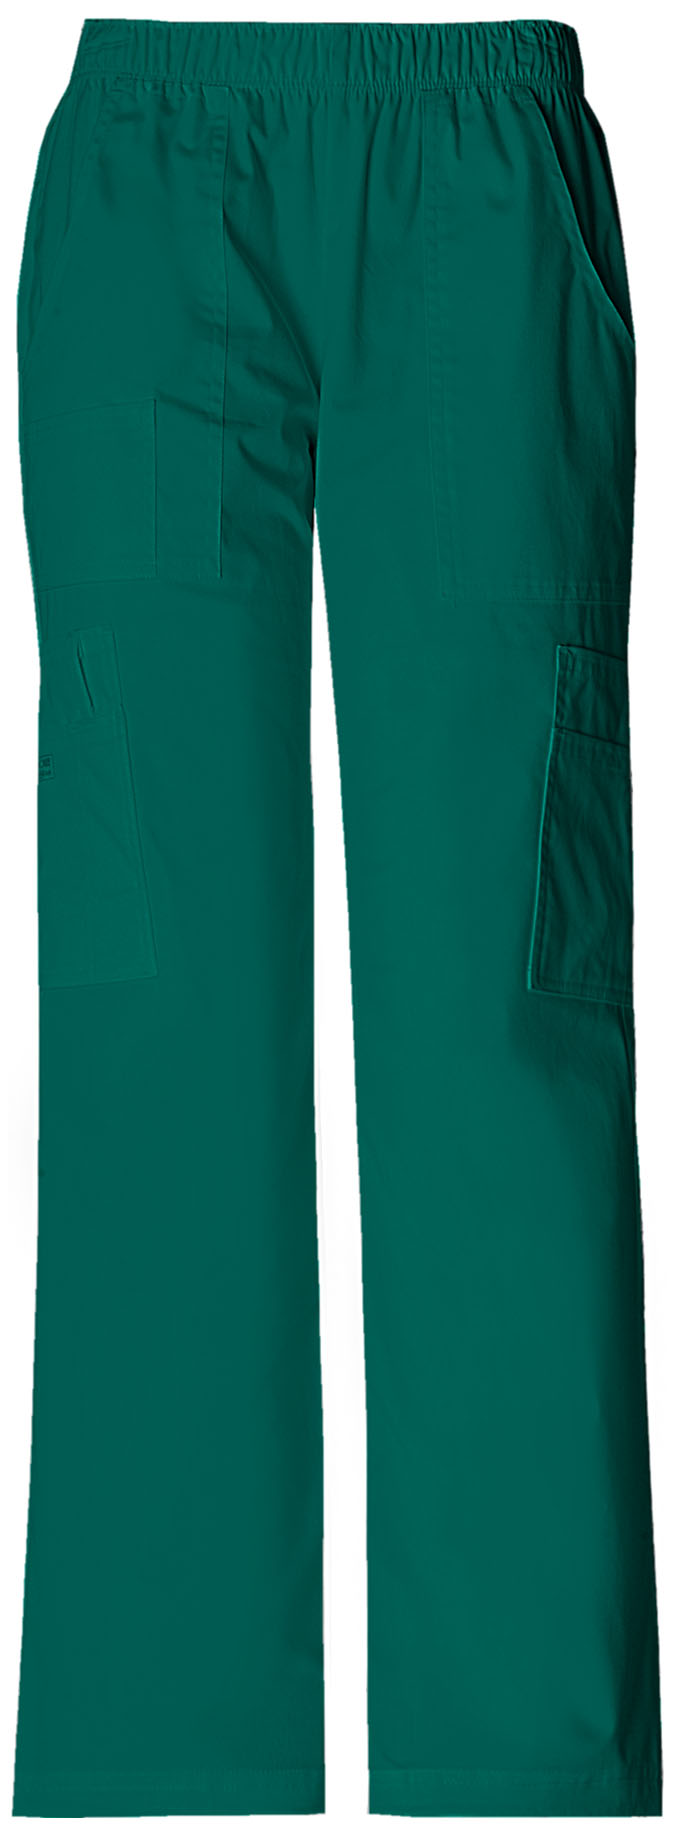 Mid Rise Pull-On Pant Cargo Pant